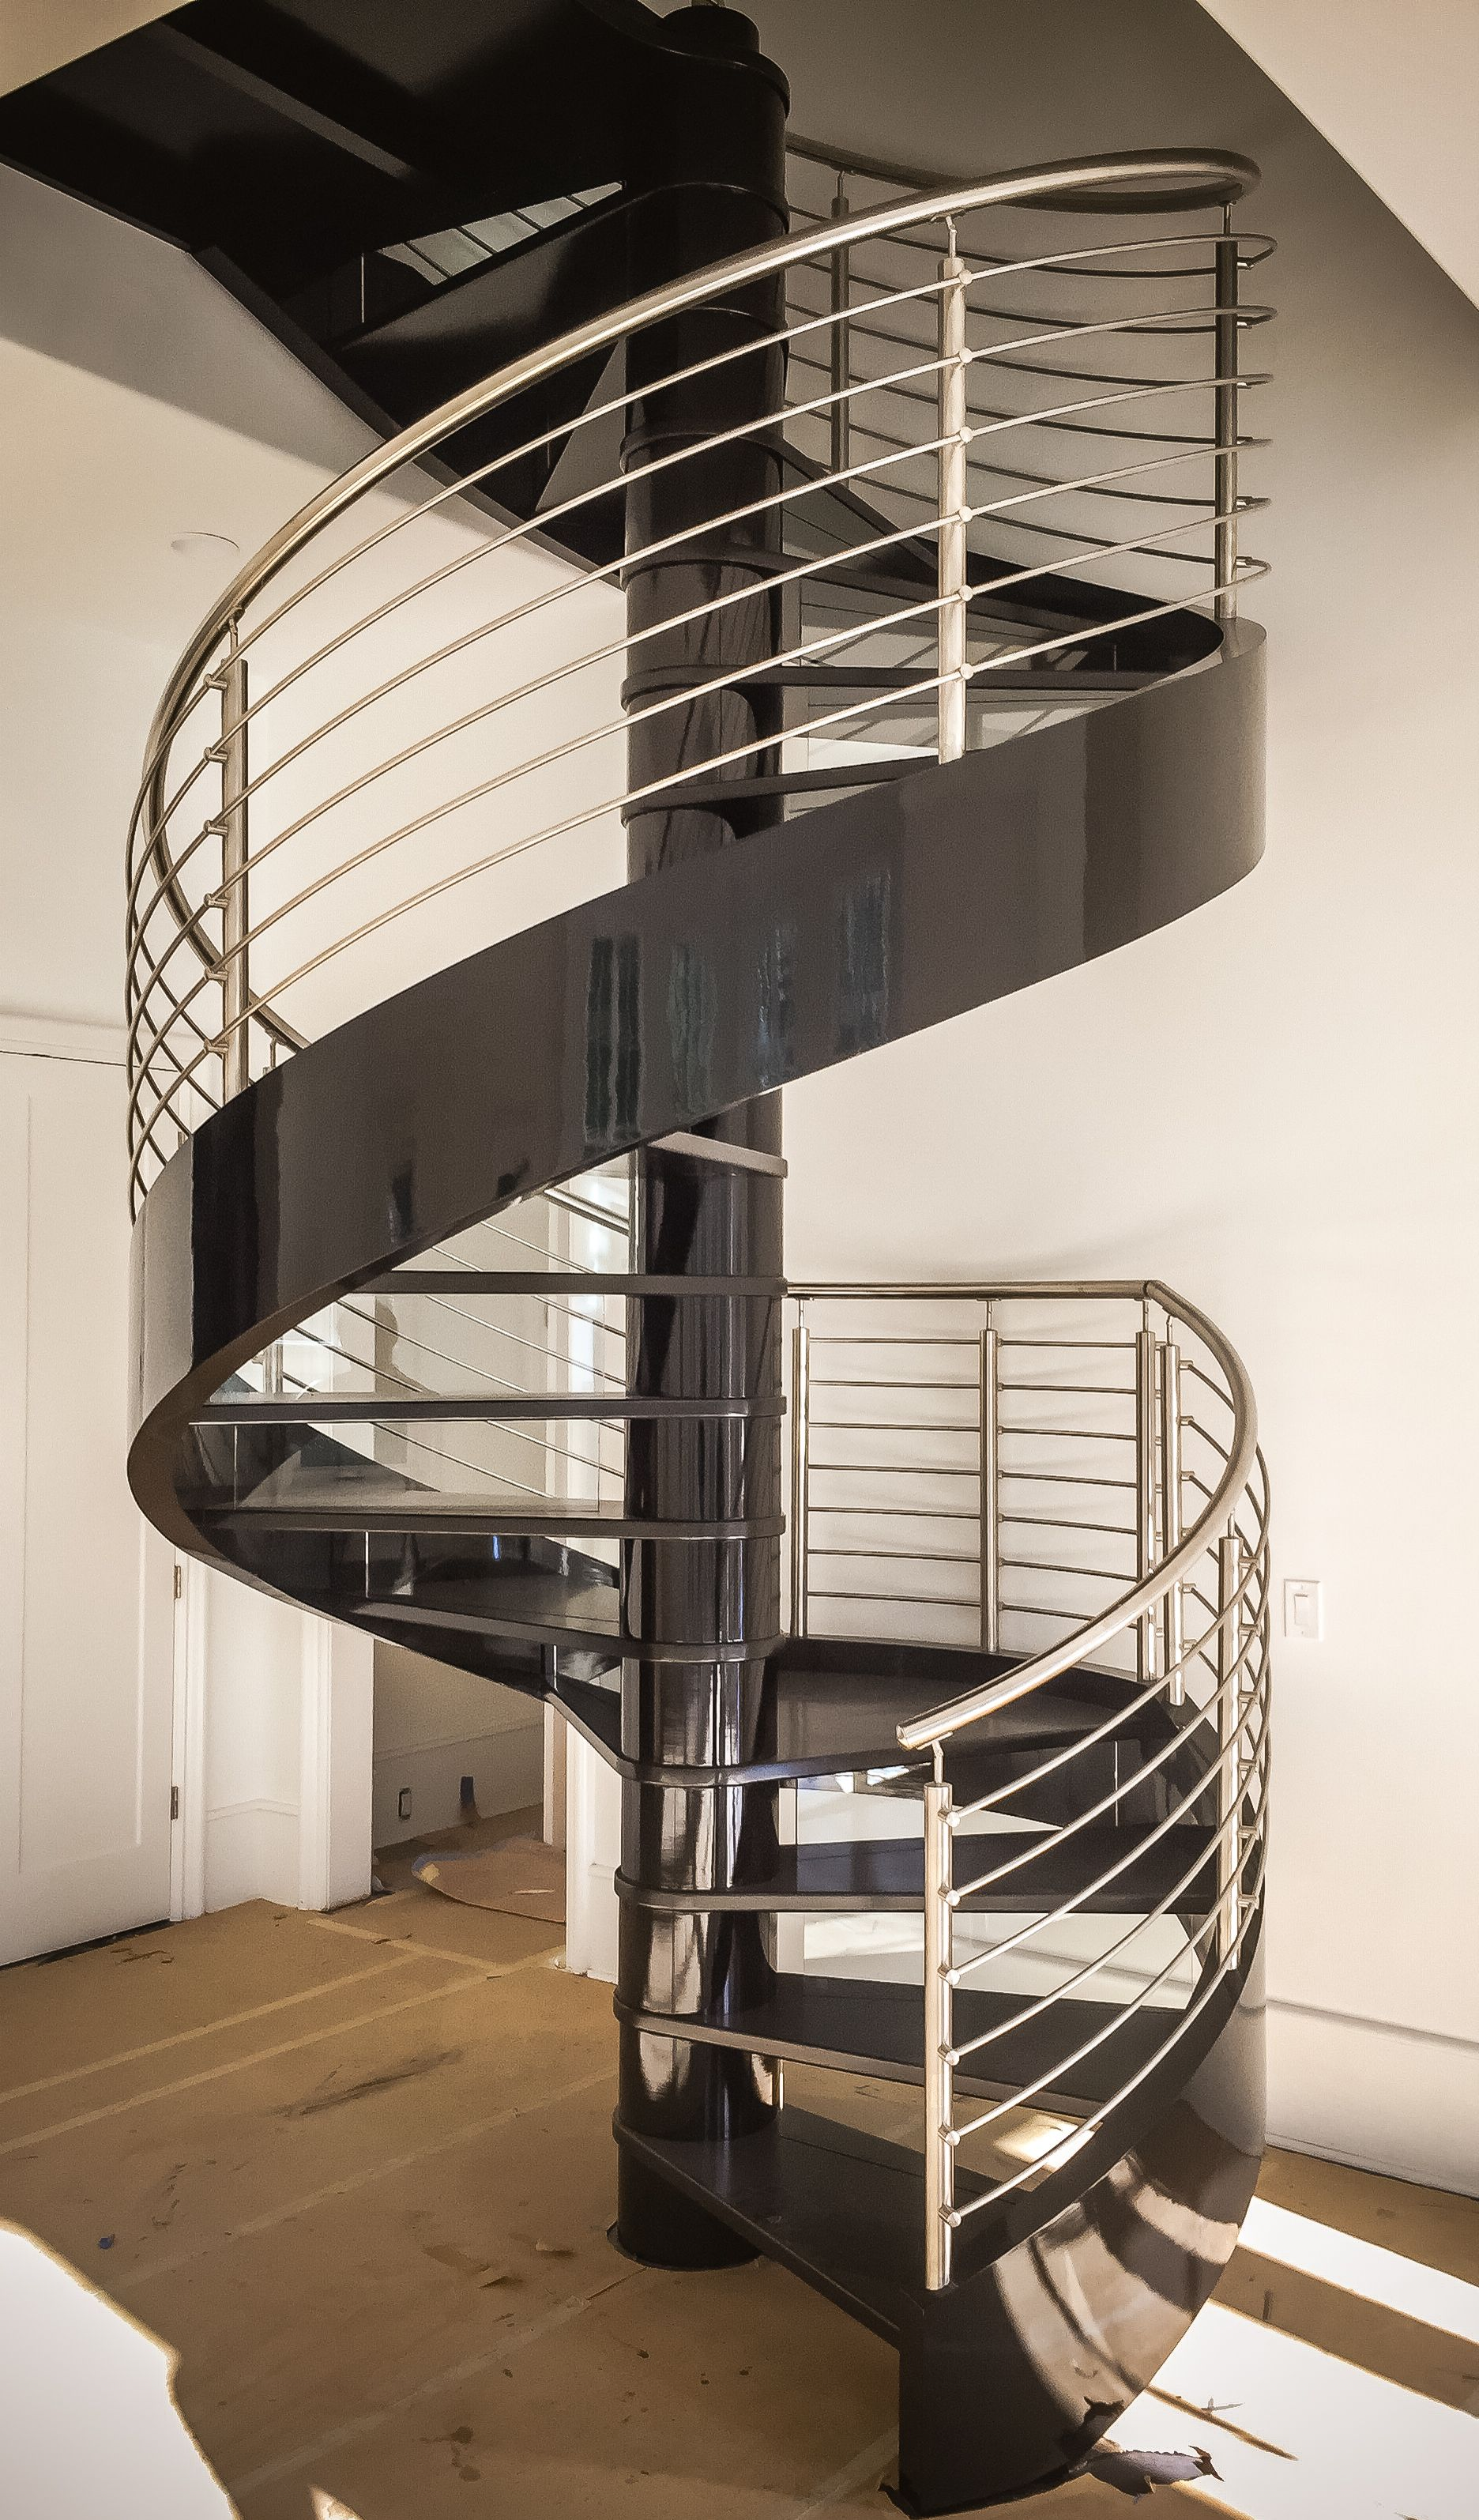 Stainless steel open riser spiral staircase.